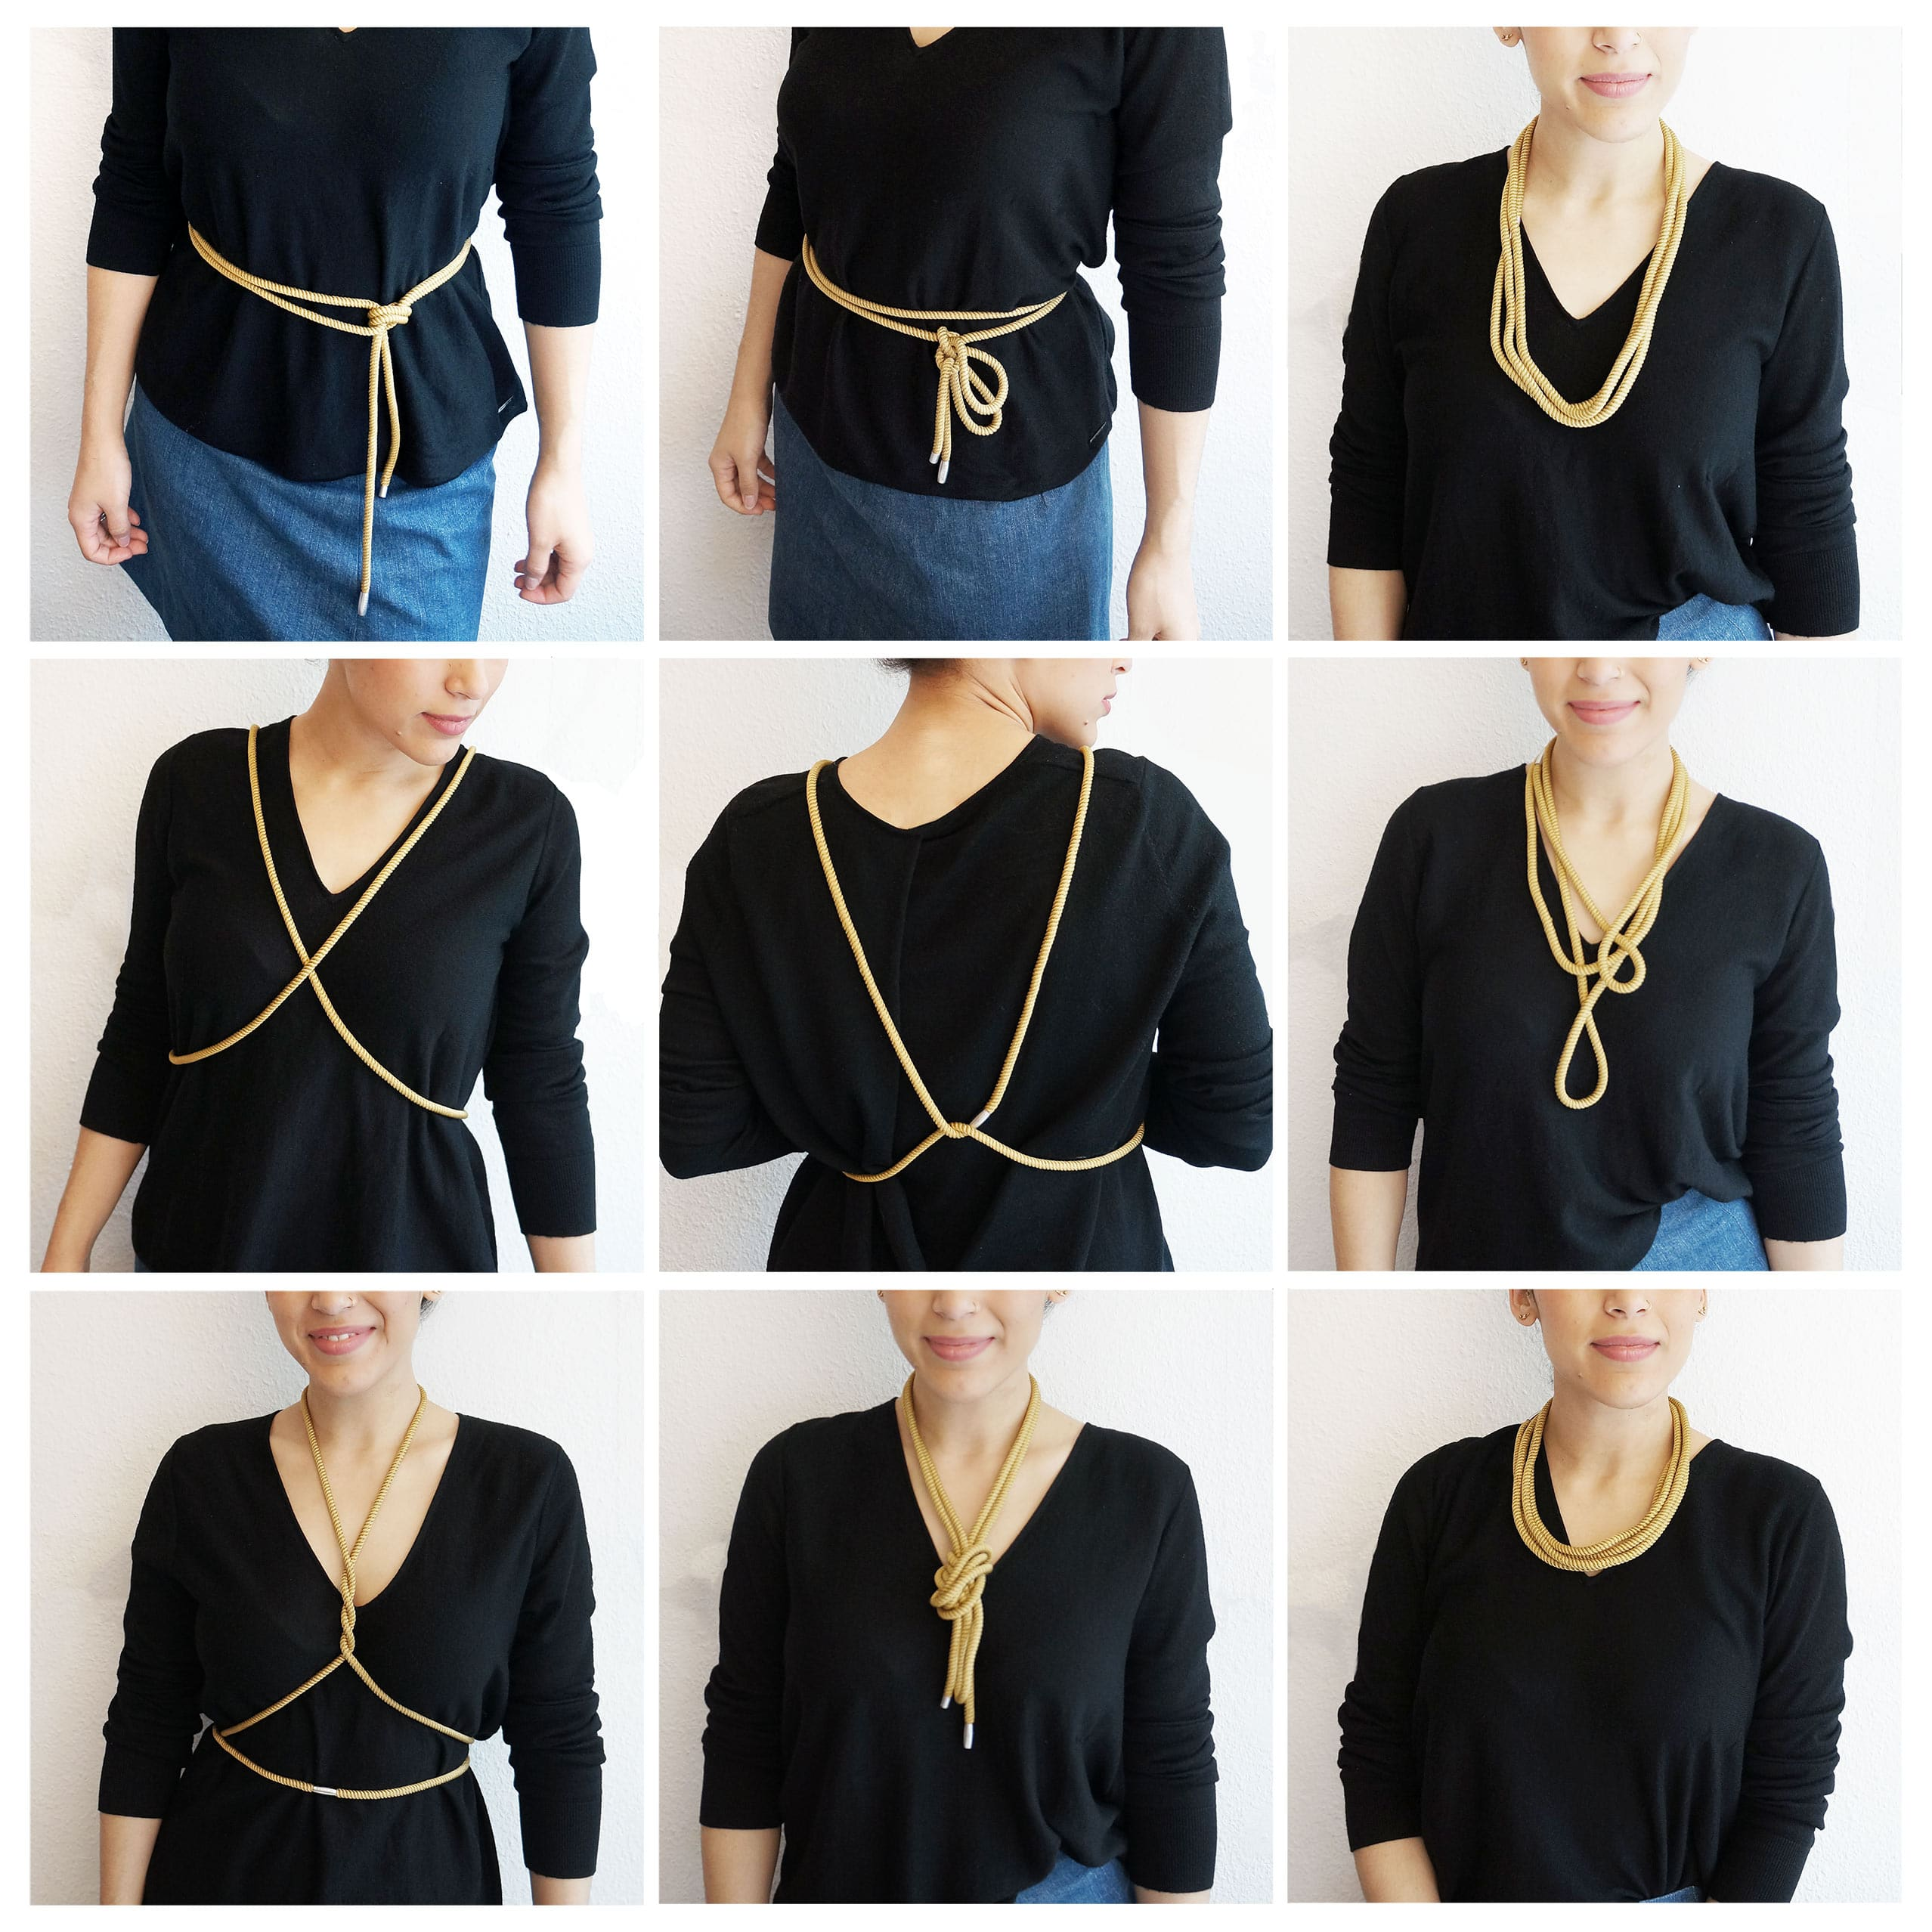 Knothingelse necklace worn in different ways